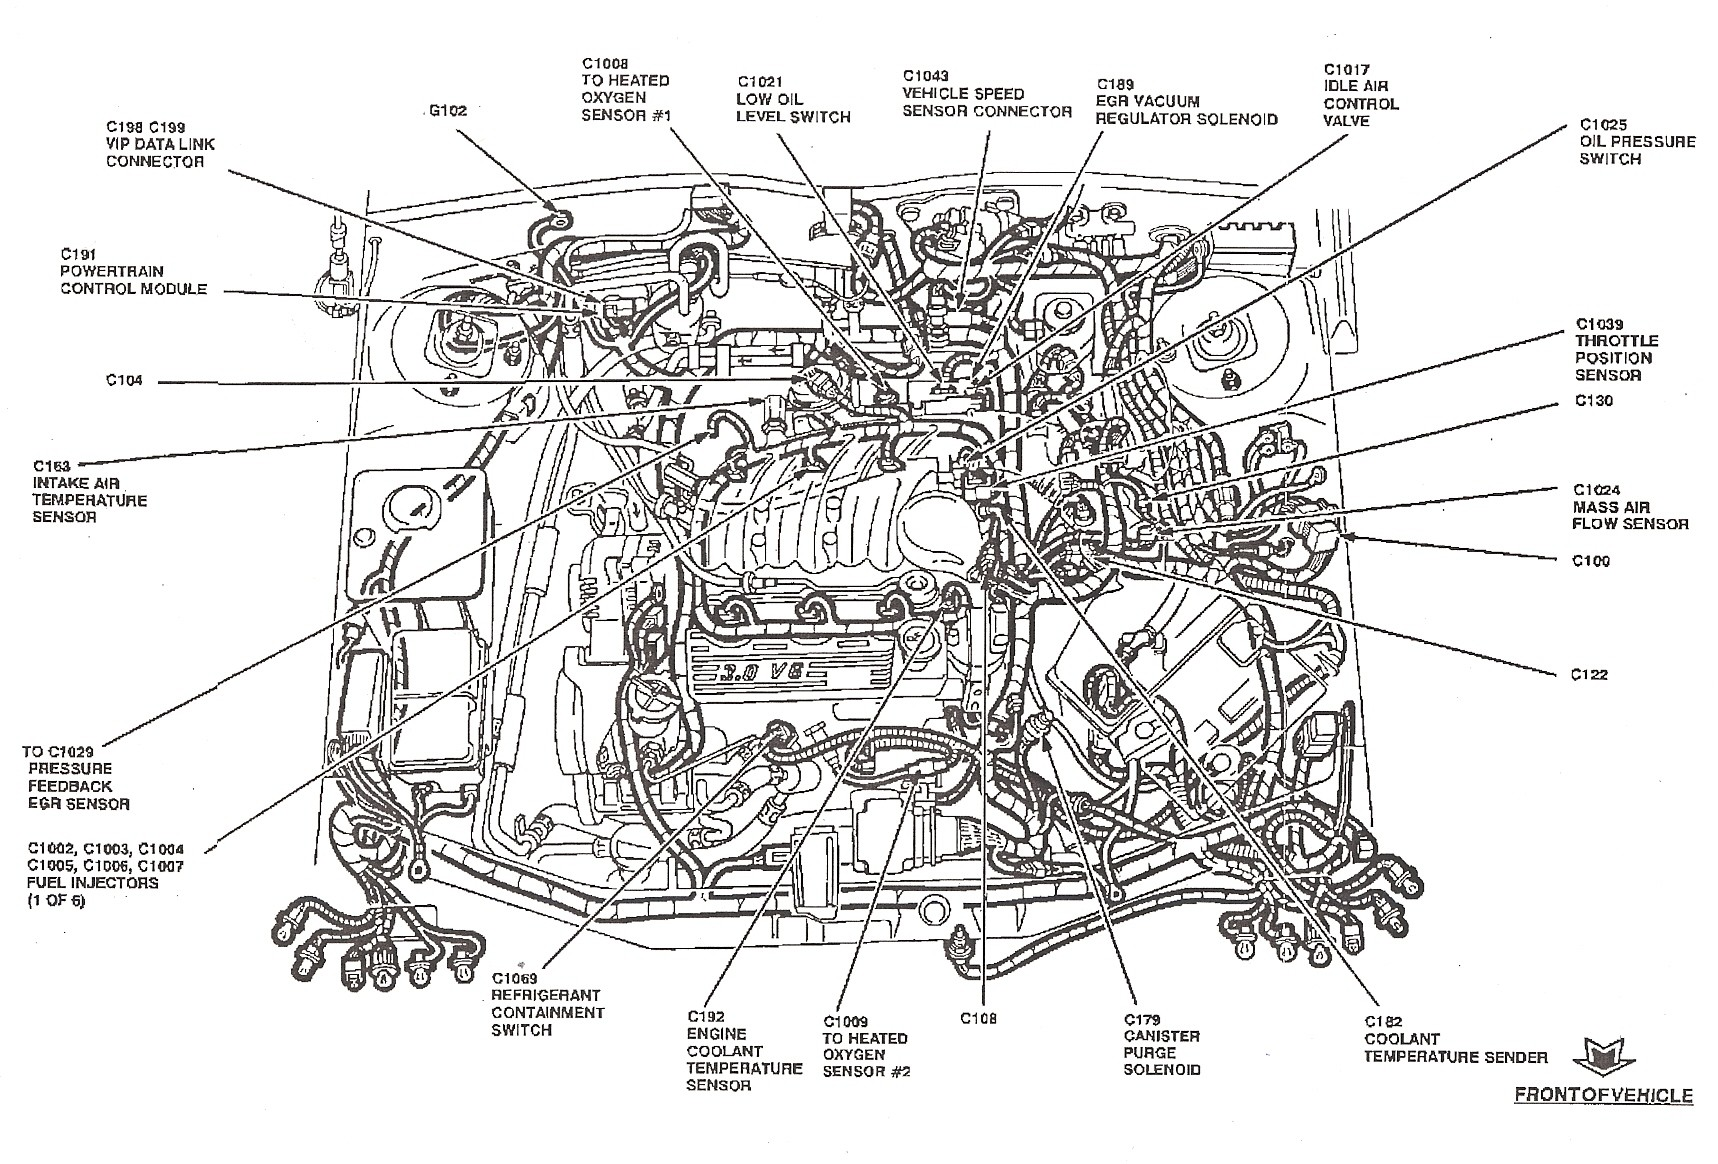 hight resolution of 2000 ford focus se engine diagram wiring diagram sheet 2000 ford focus engine diagram 2000 ford focus engine diagram